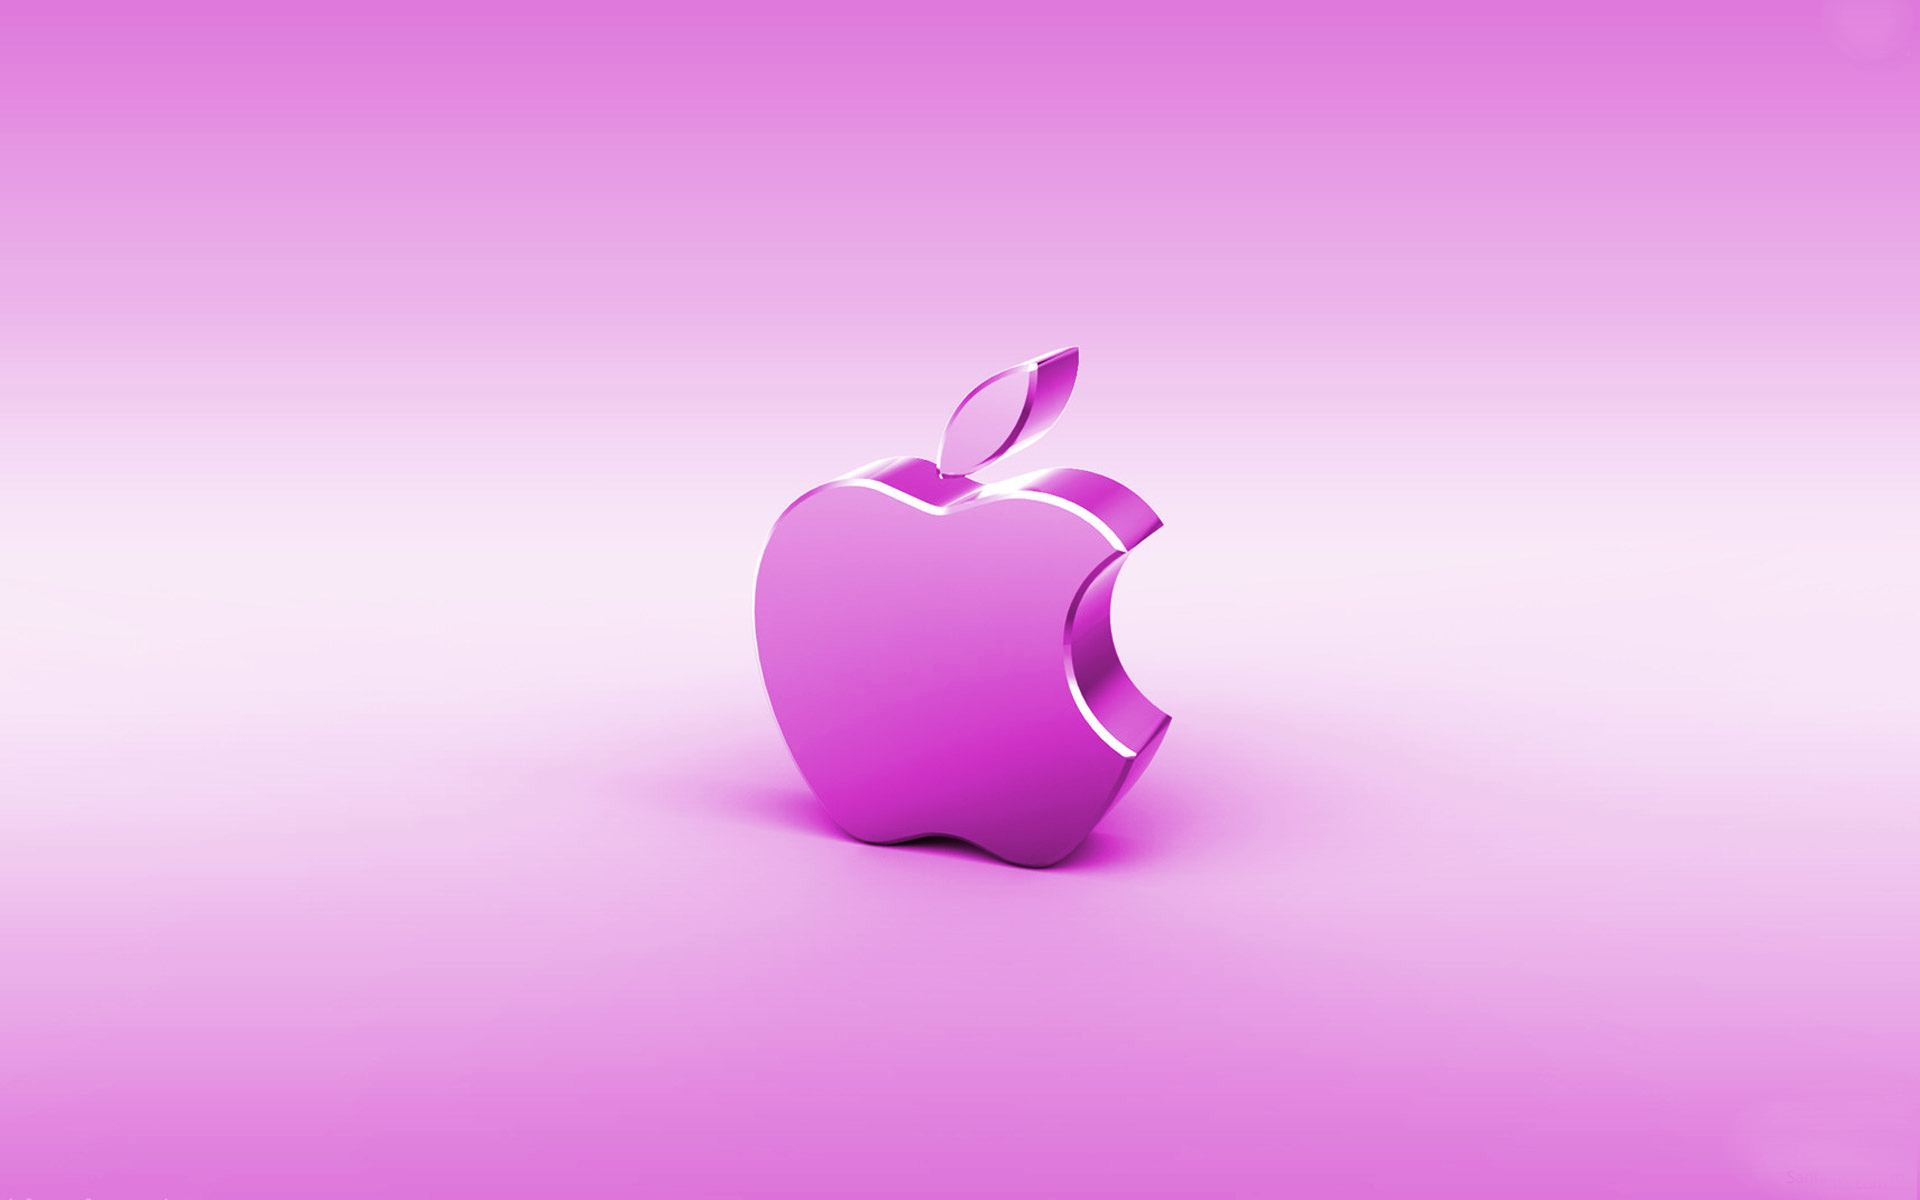 free-cool-pink-iphone-wallpaper-download | wallpaper.wiki